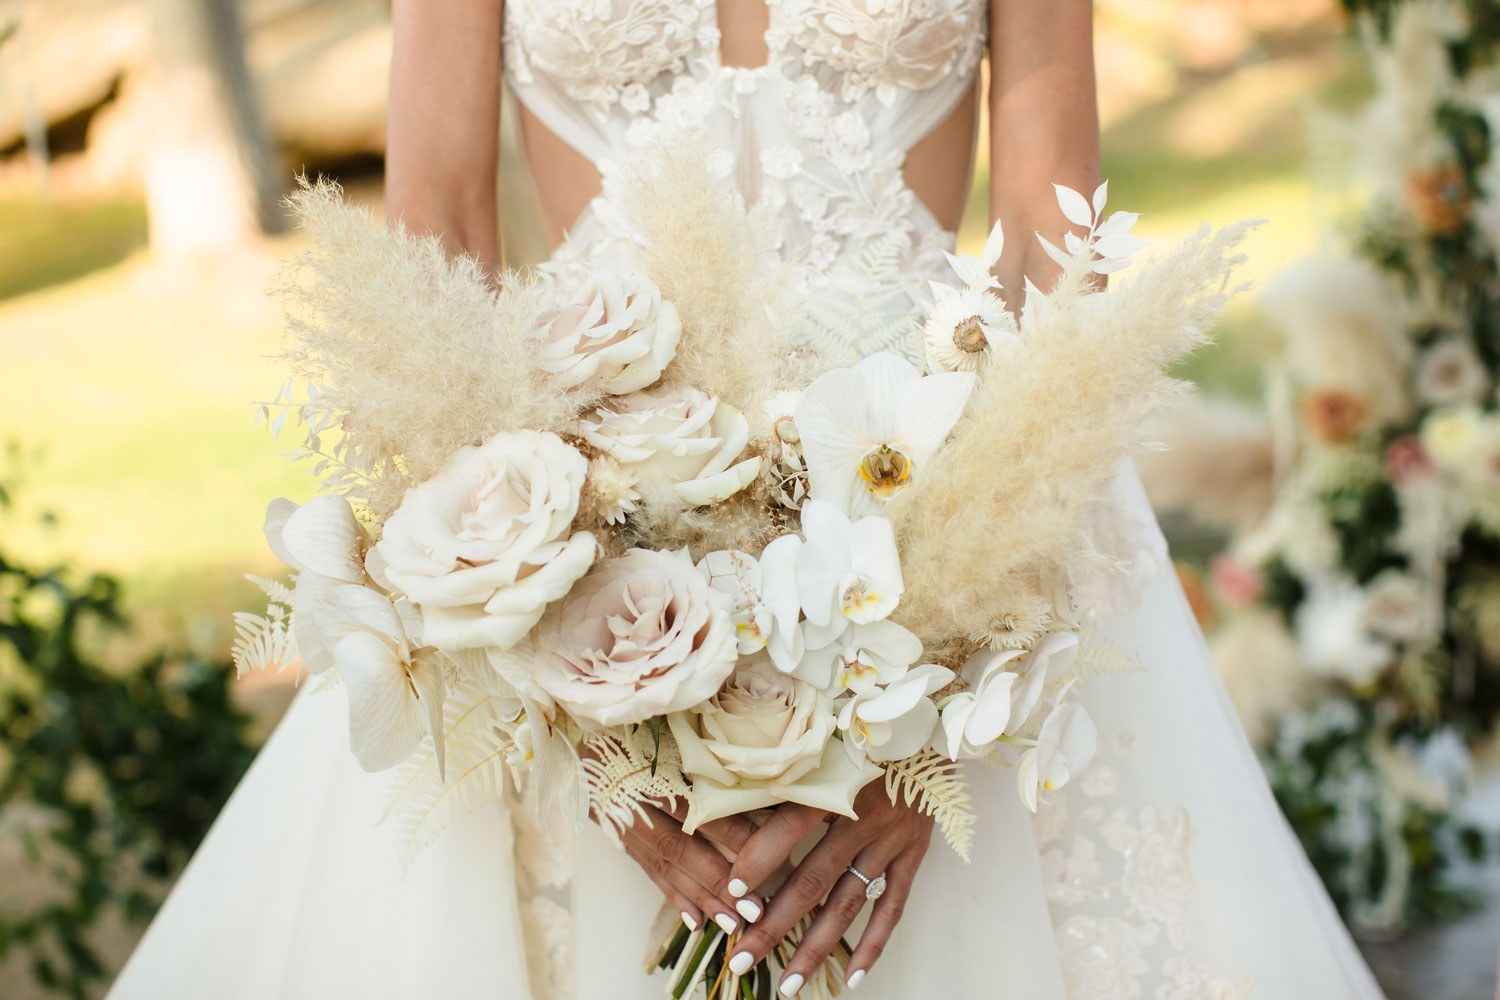 Top Chef Marcel Vigneron and Lauren Rae Levy real wedding planned by Tessa Lyn Events wedding bouquet pampas grass